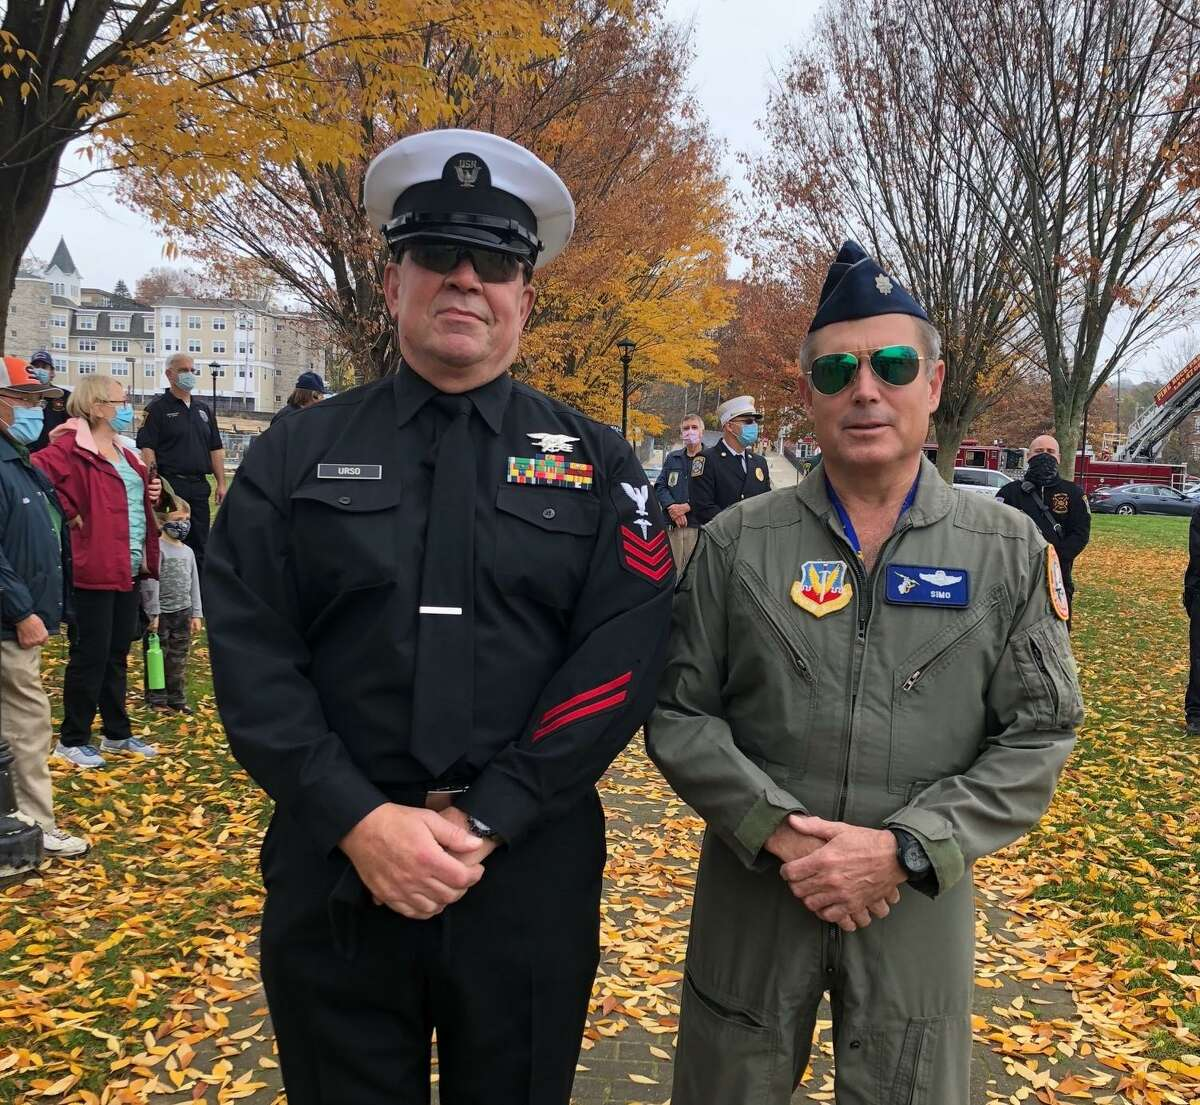 First responders attended the Veterans Day ceremony on Wednesday, Nov. 11, at the River Walk Memorial Park to honor the city's military service veterans.